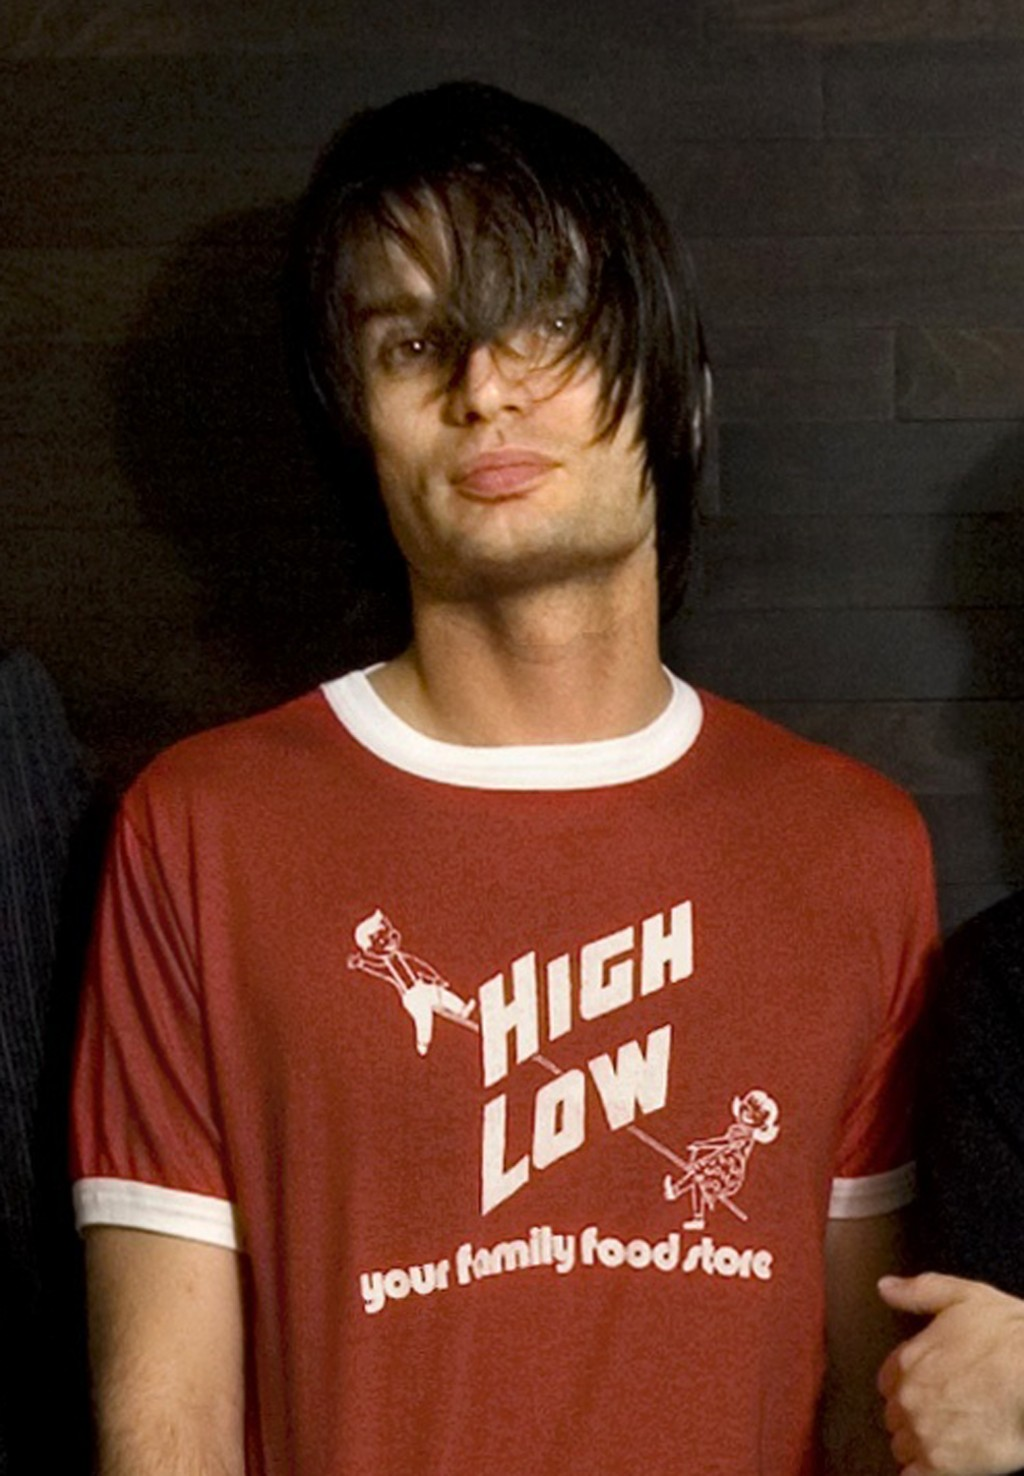 FILE - This May 13, 2008, file photo shows Radiohead band member Jonny Greenwood in Washington. Greenwood is nominated for an Oscar for original score